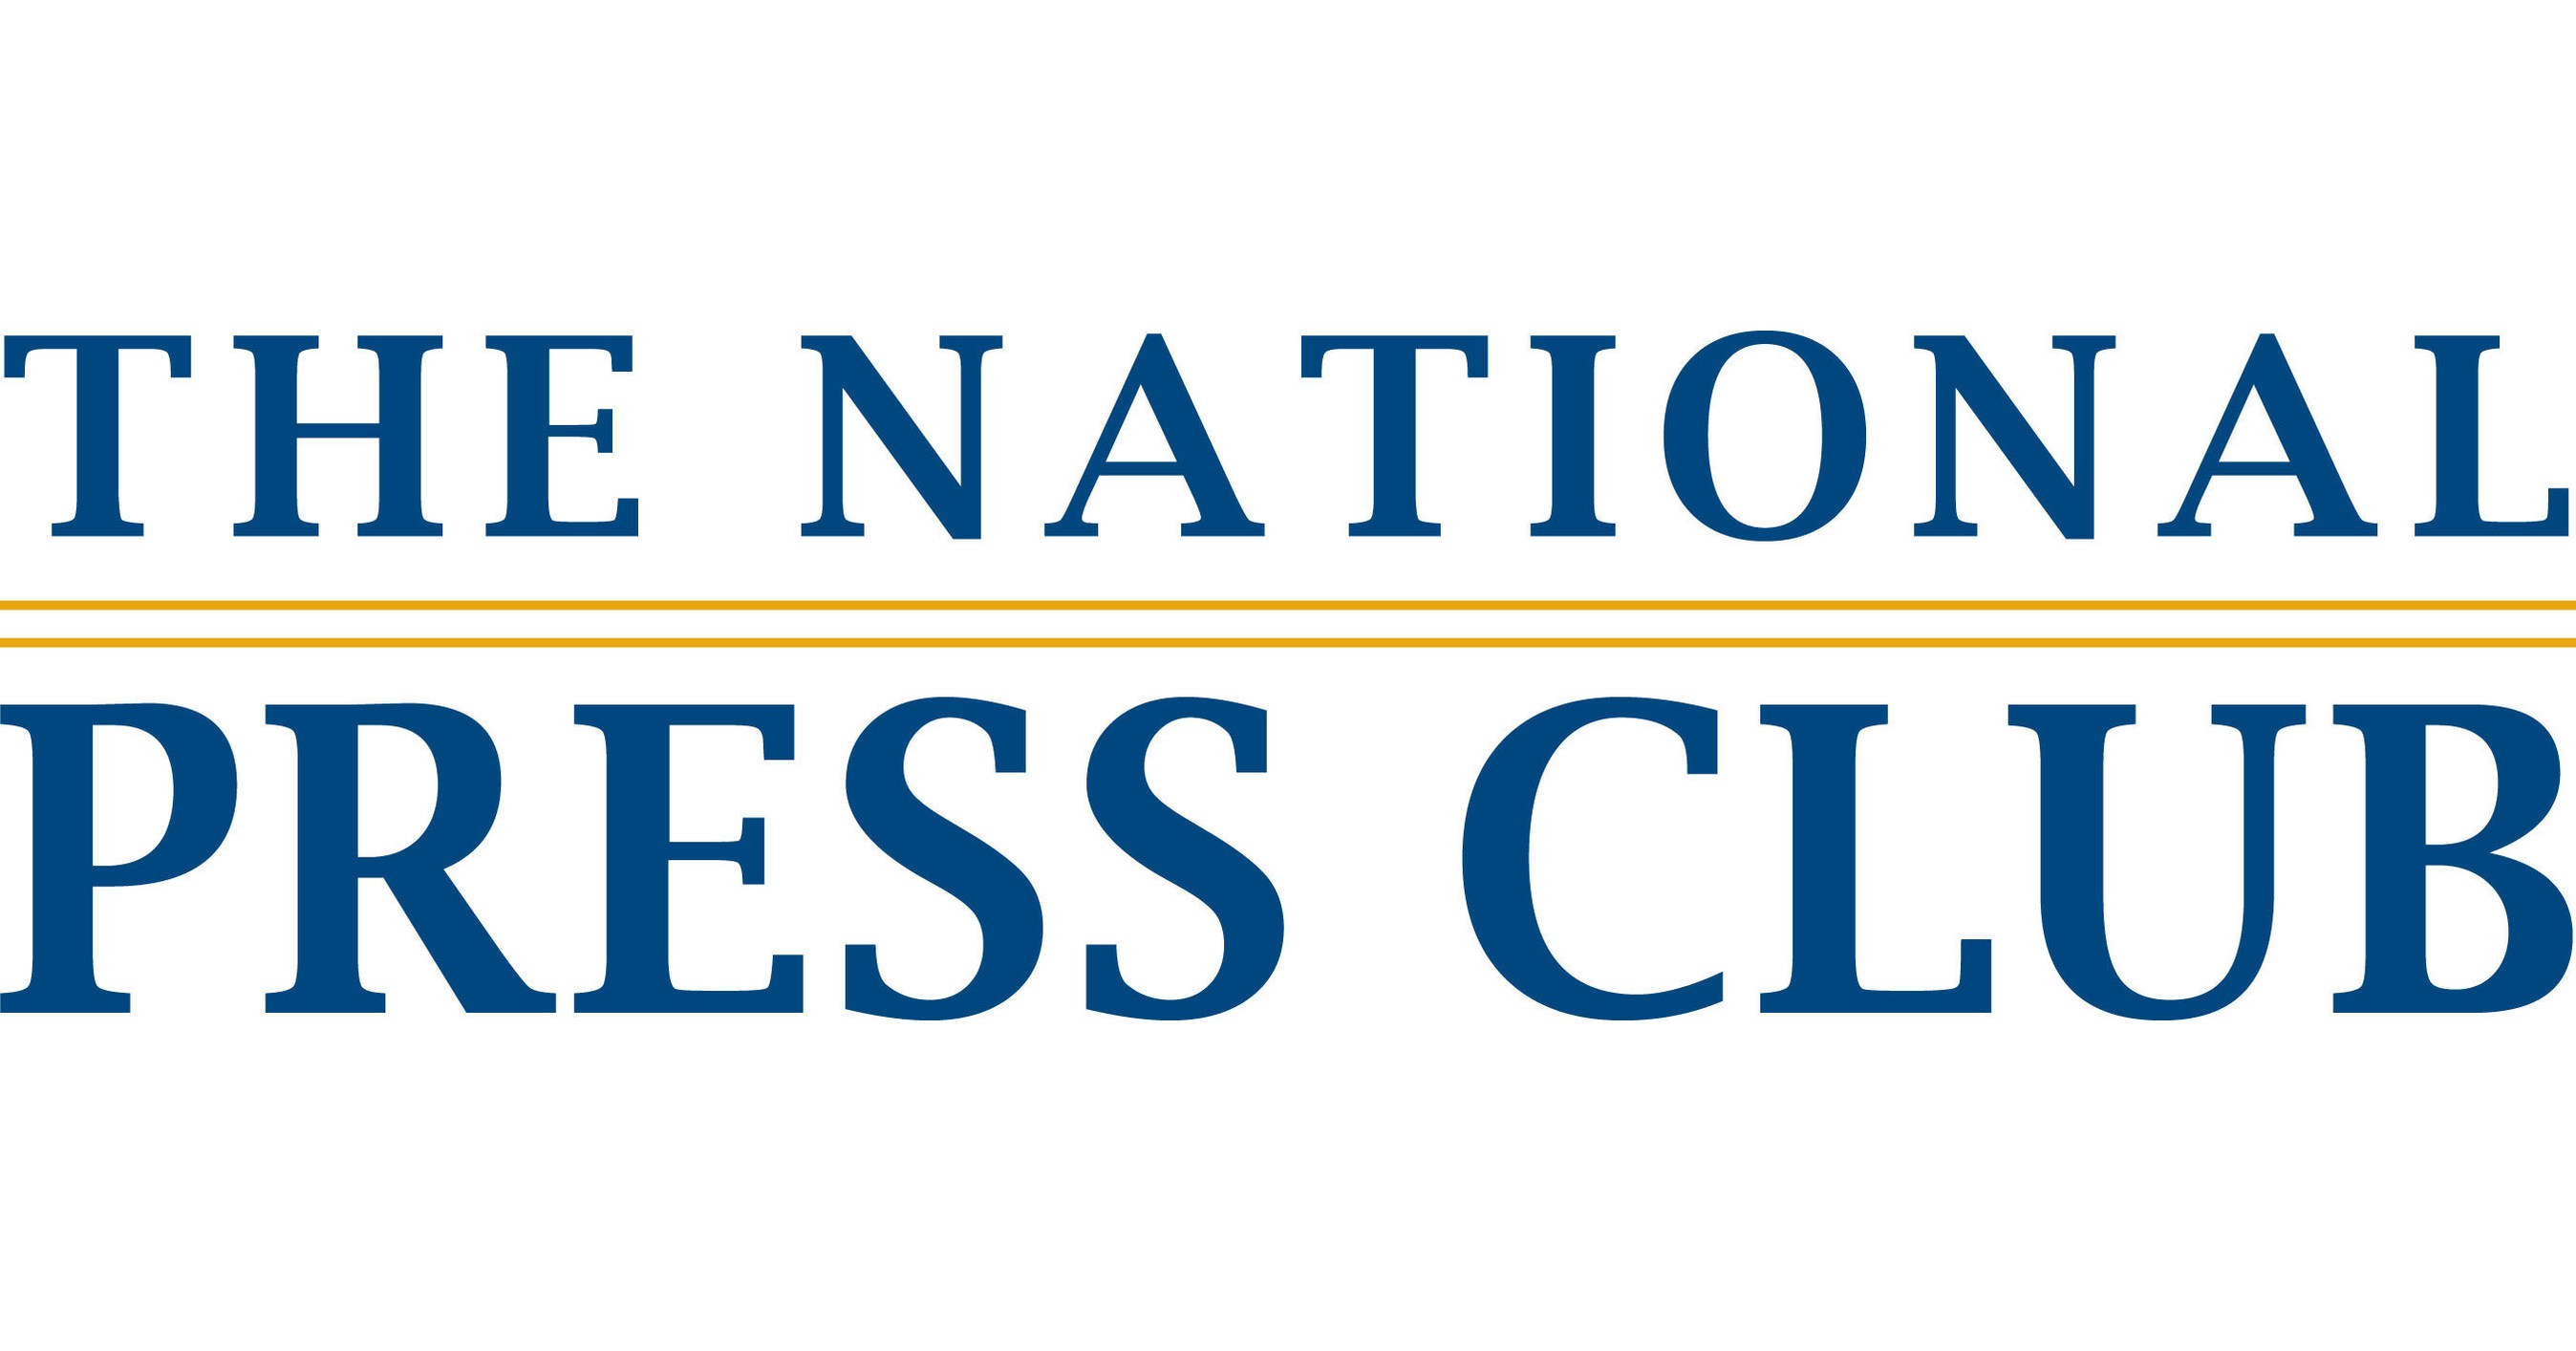 National Press Club urges freedom for Shawkan in open letter to Egyptian ambassador